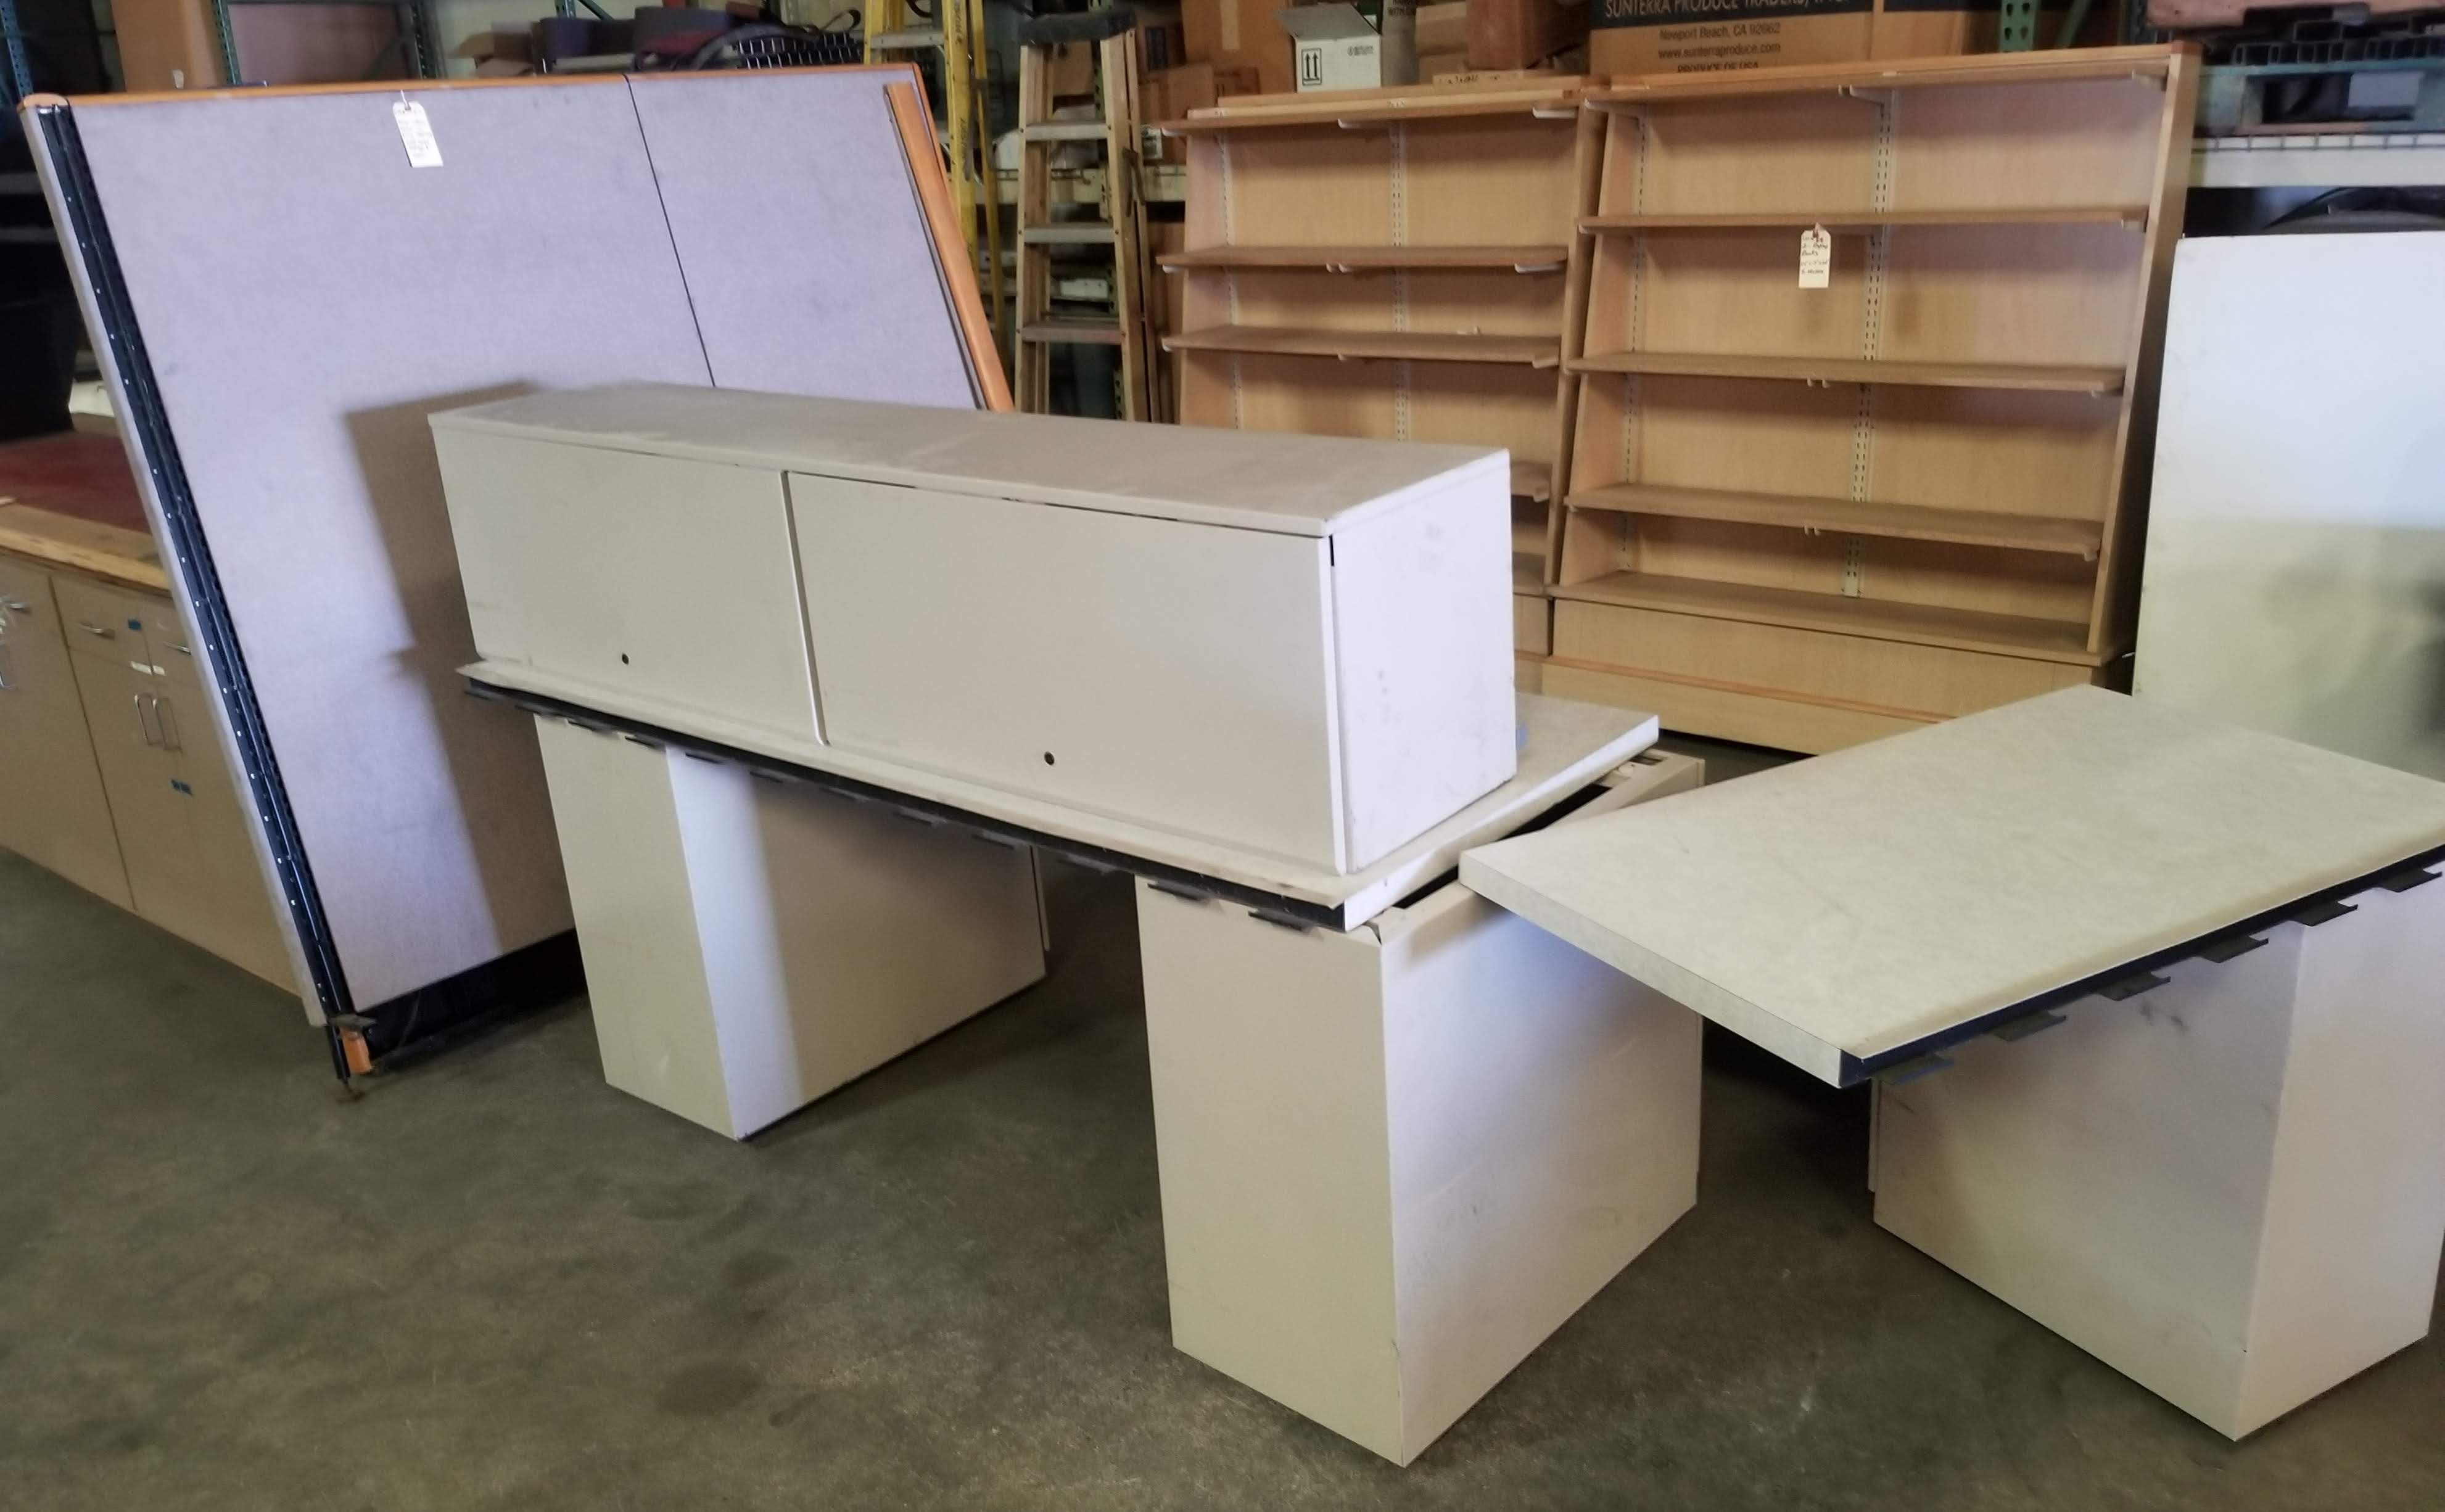 Grey Office Tables with walls & 3 - Grey Filing Cabinets - Image 5 of 7